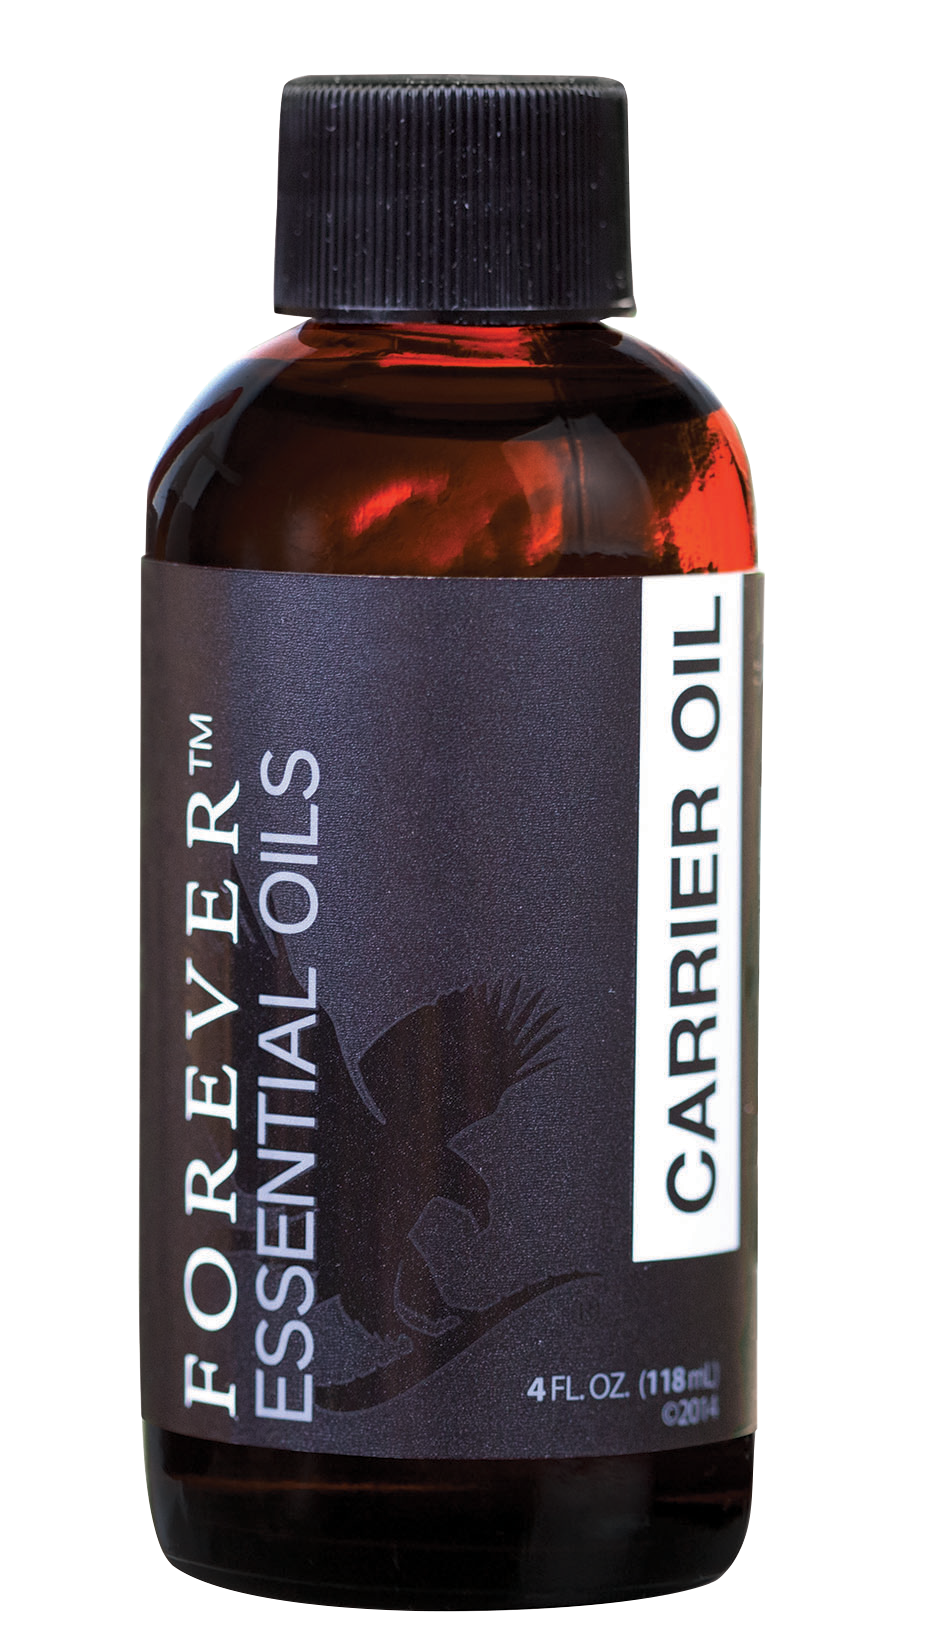 The carrier oil for your favourite aromas, Forever Essential Oils Carrier Oil, with Aloe vera, vitamins E, A and C and natural, fragrance-free oils.